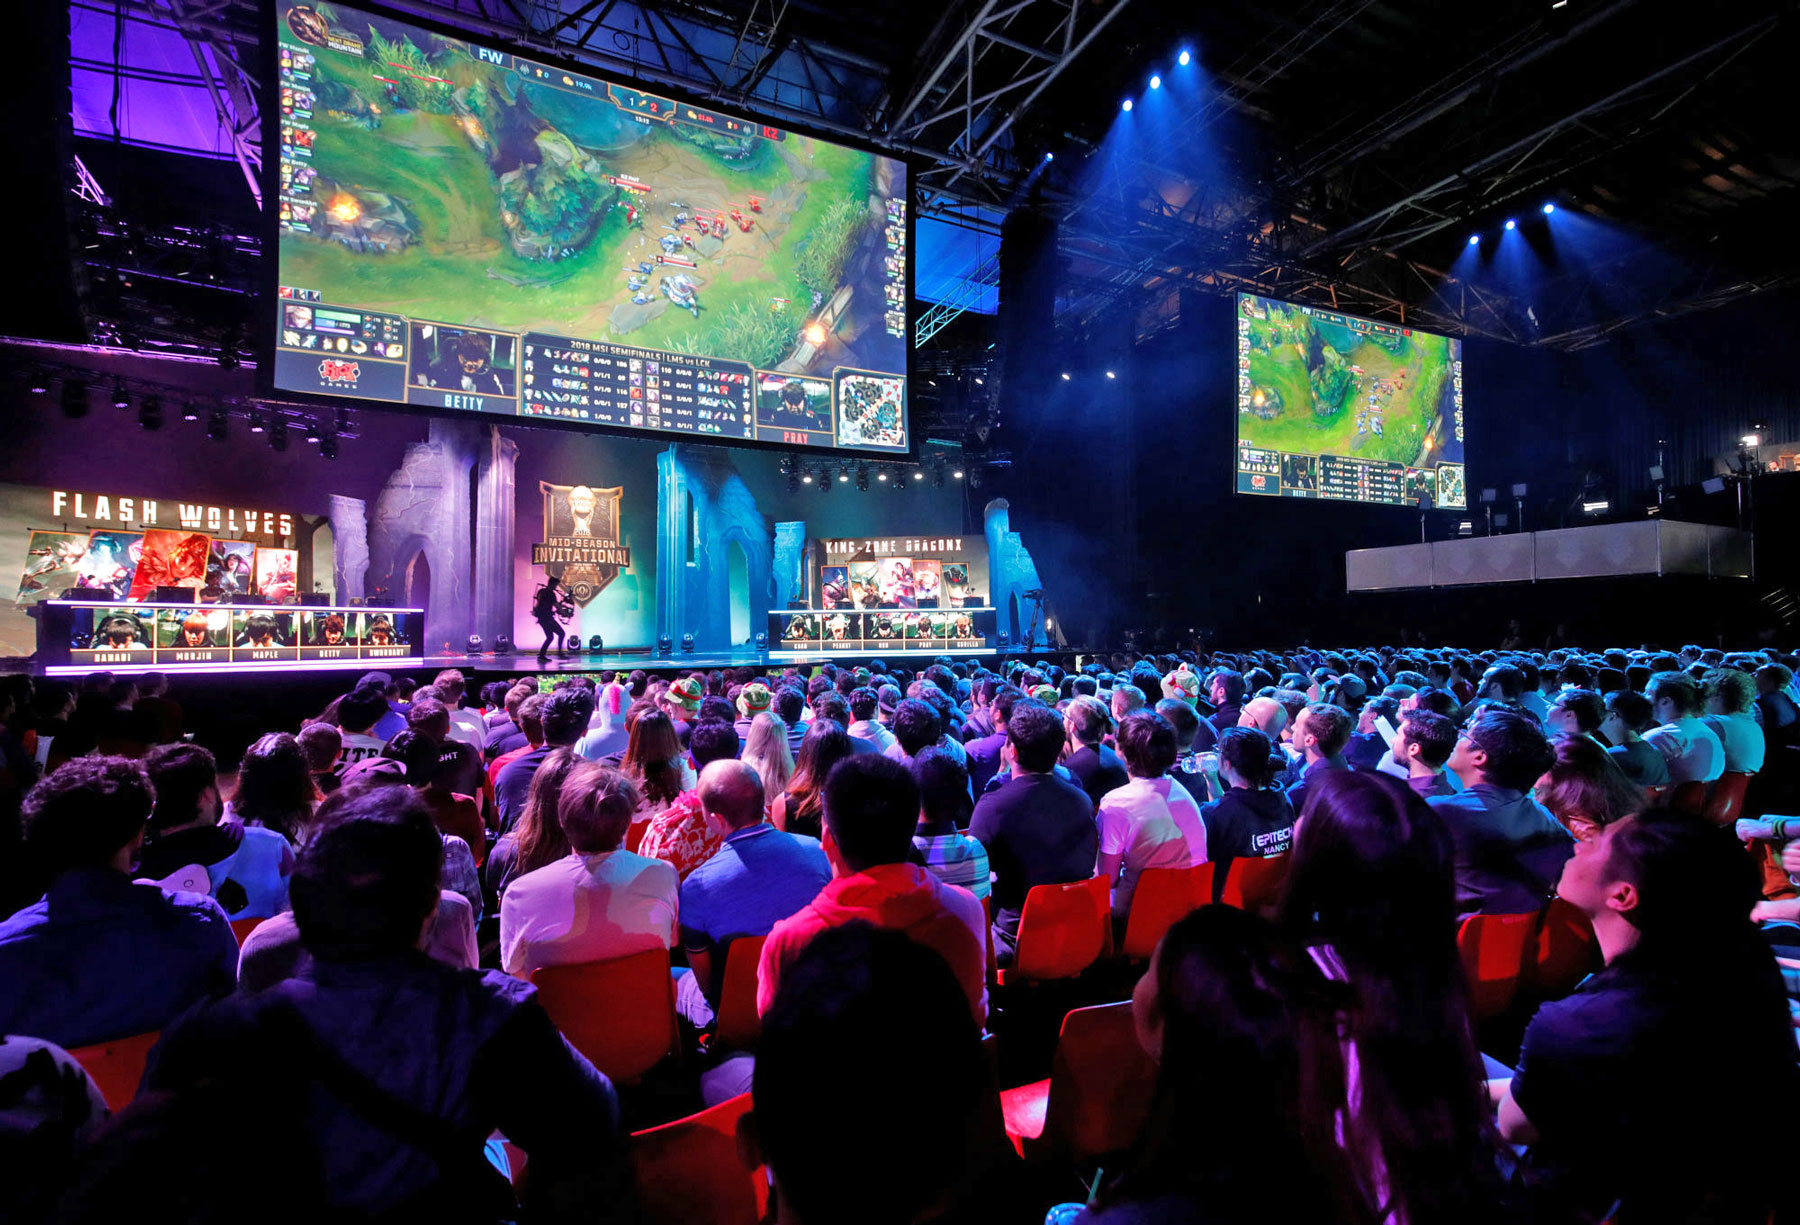 Spectators are seated watching eSports competitors on a stage. A large screen above the competitors displays the game they are playing.